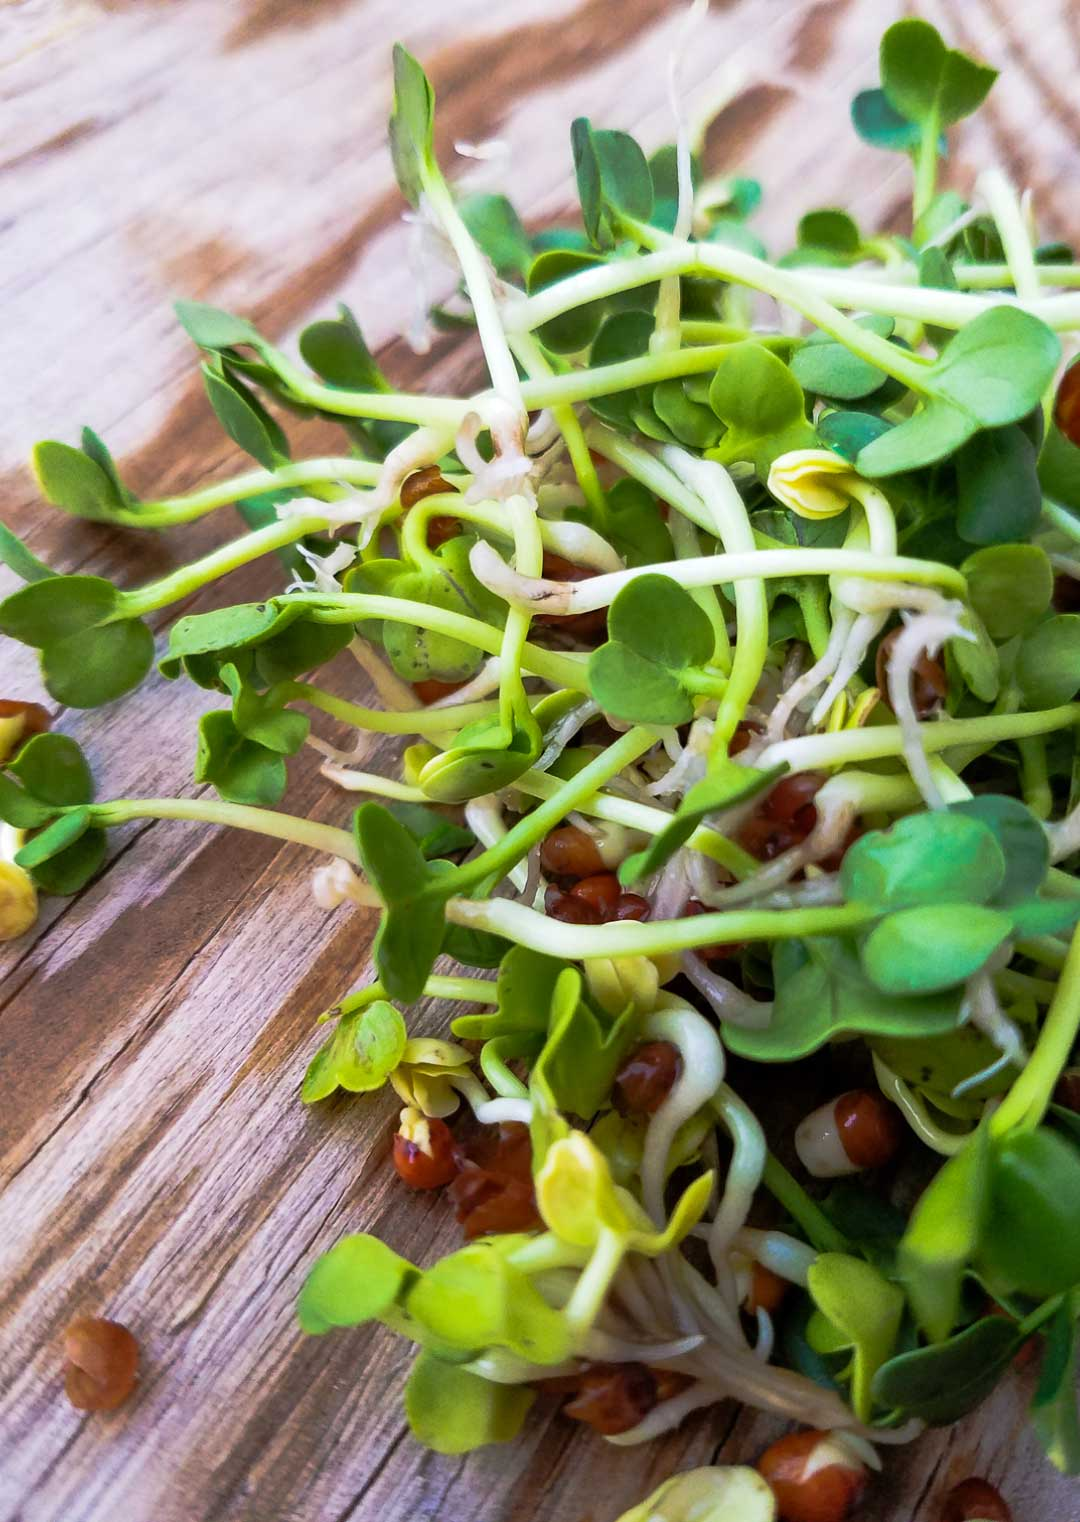 How To Sprout Radish Seeds | My mother called them mermaid hair... We never had a shortage of mermaid hair (aka alfalfa sprouts) in the fridge. Sprouts, essentially a micro-green, are insanely nutritious. Learn to grow your own, and you never have to be without healthy greens! | WildernessFamilyNaturals.com